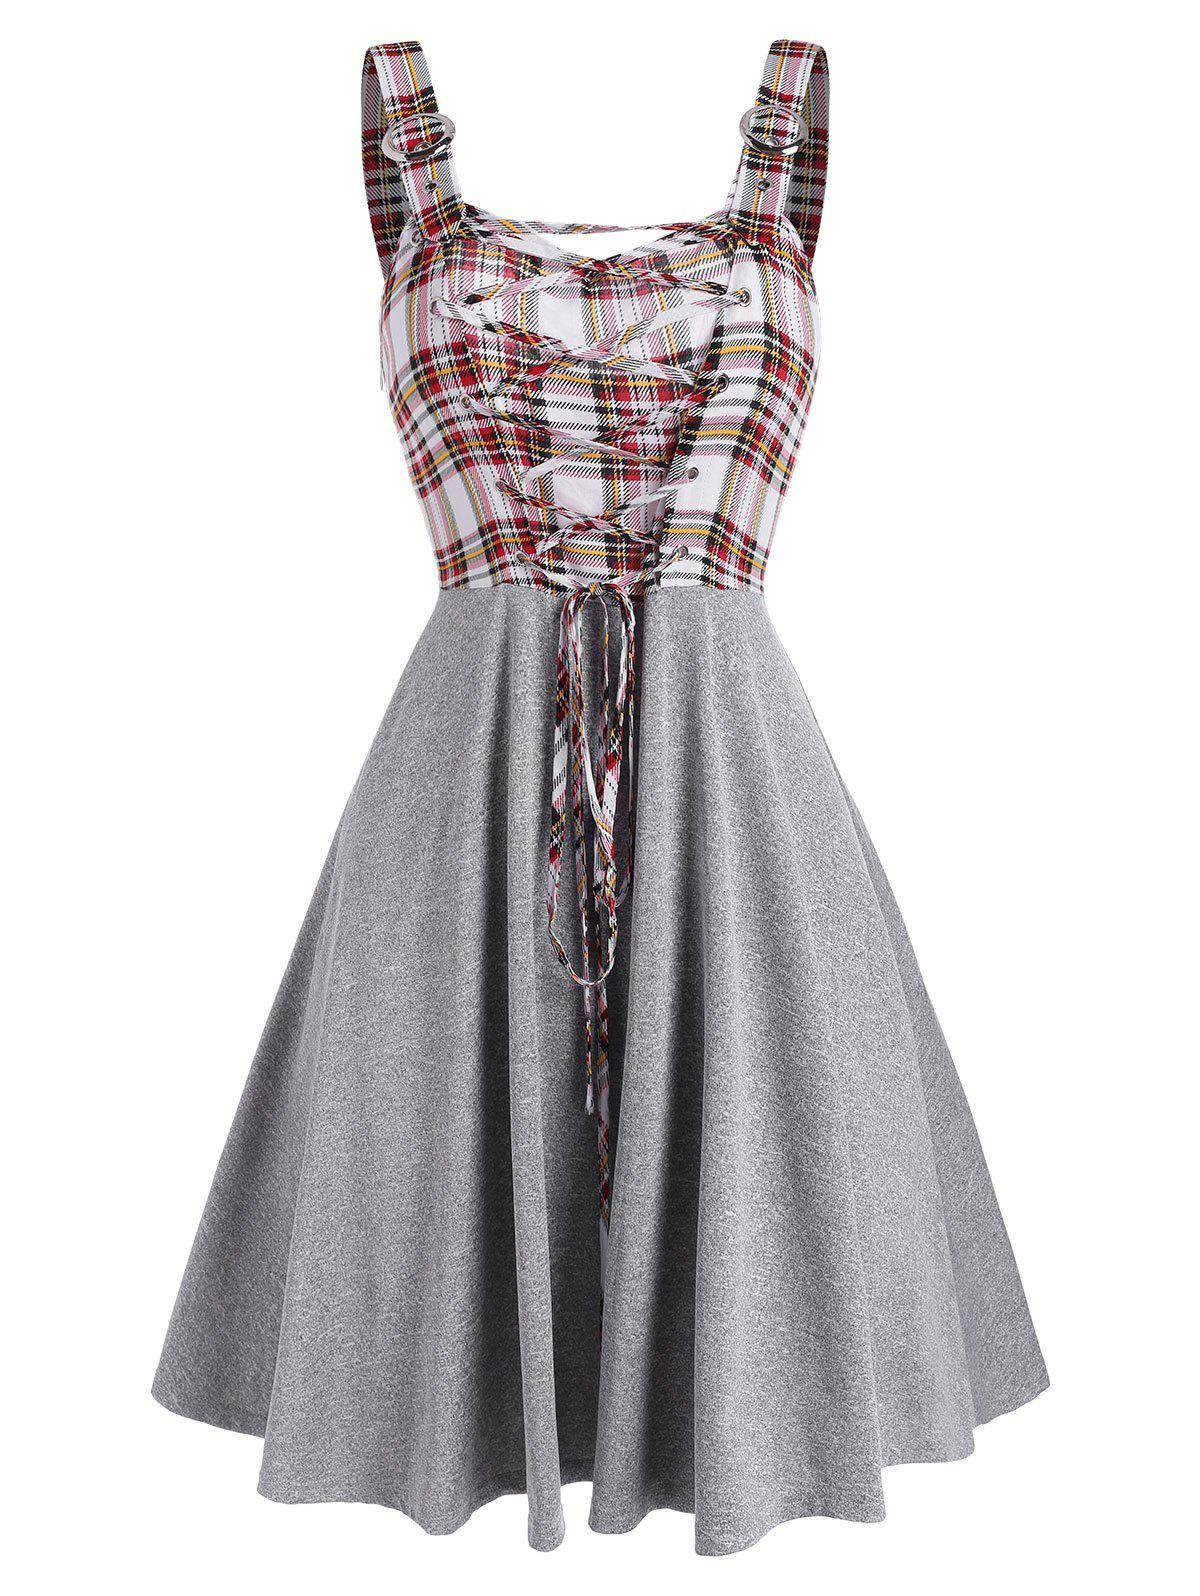 Sleeveless Plaid Print Lace-up Front Dress - multicolor A L